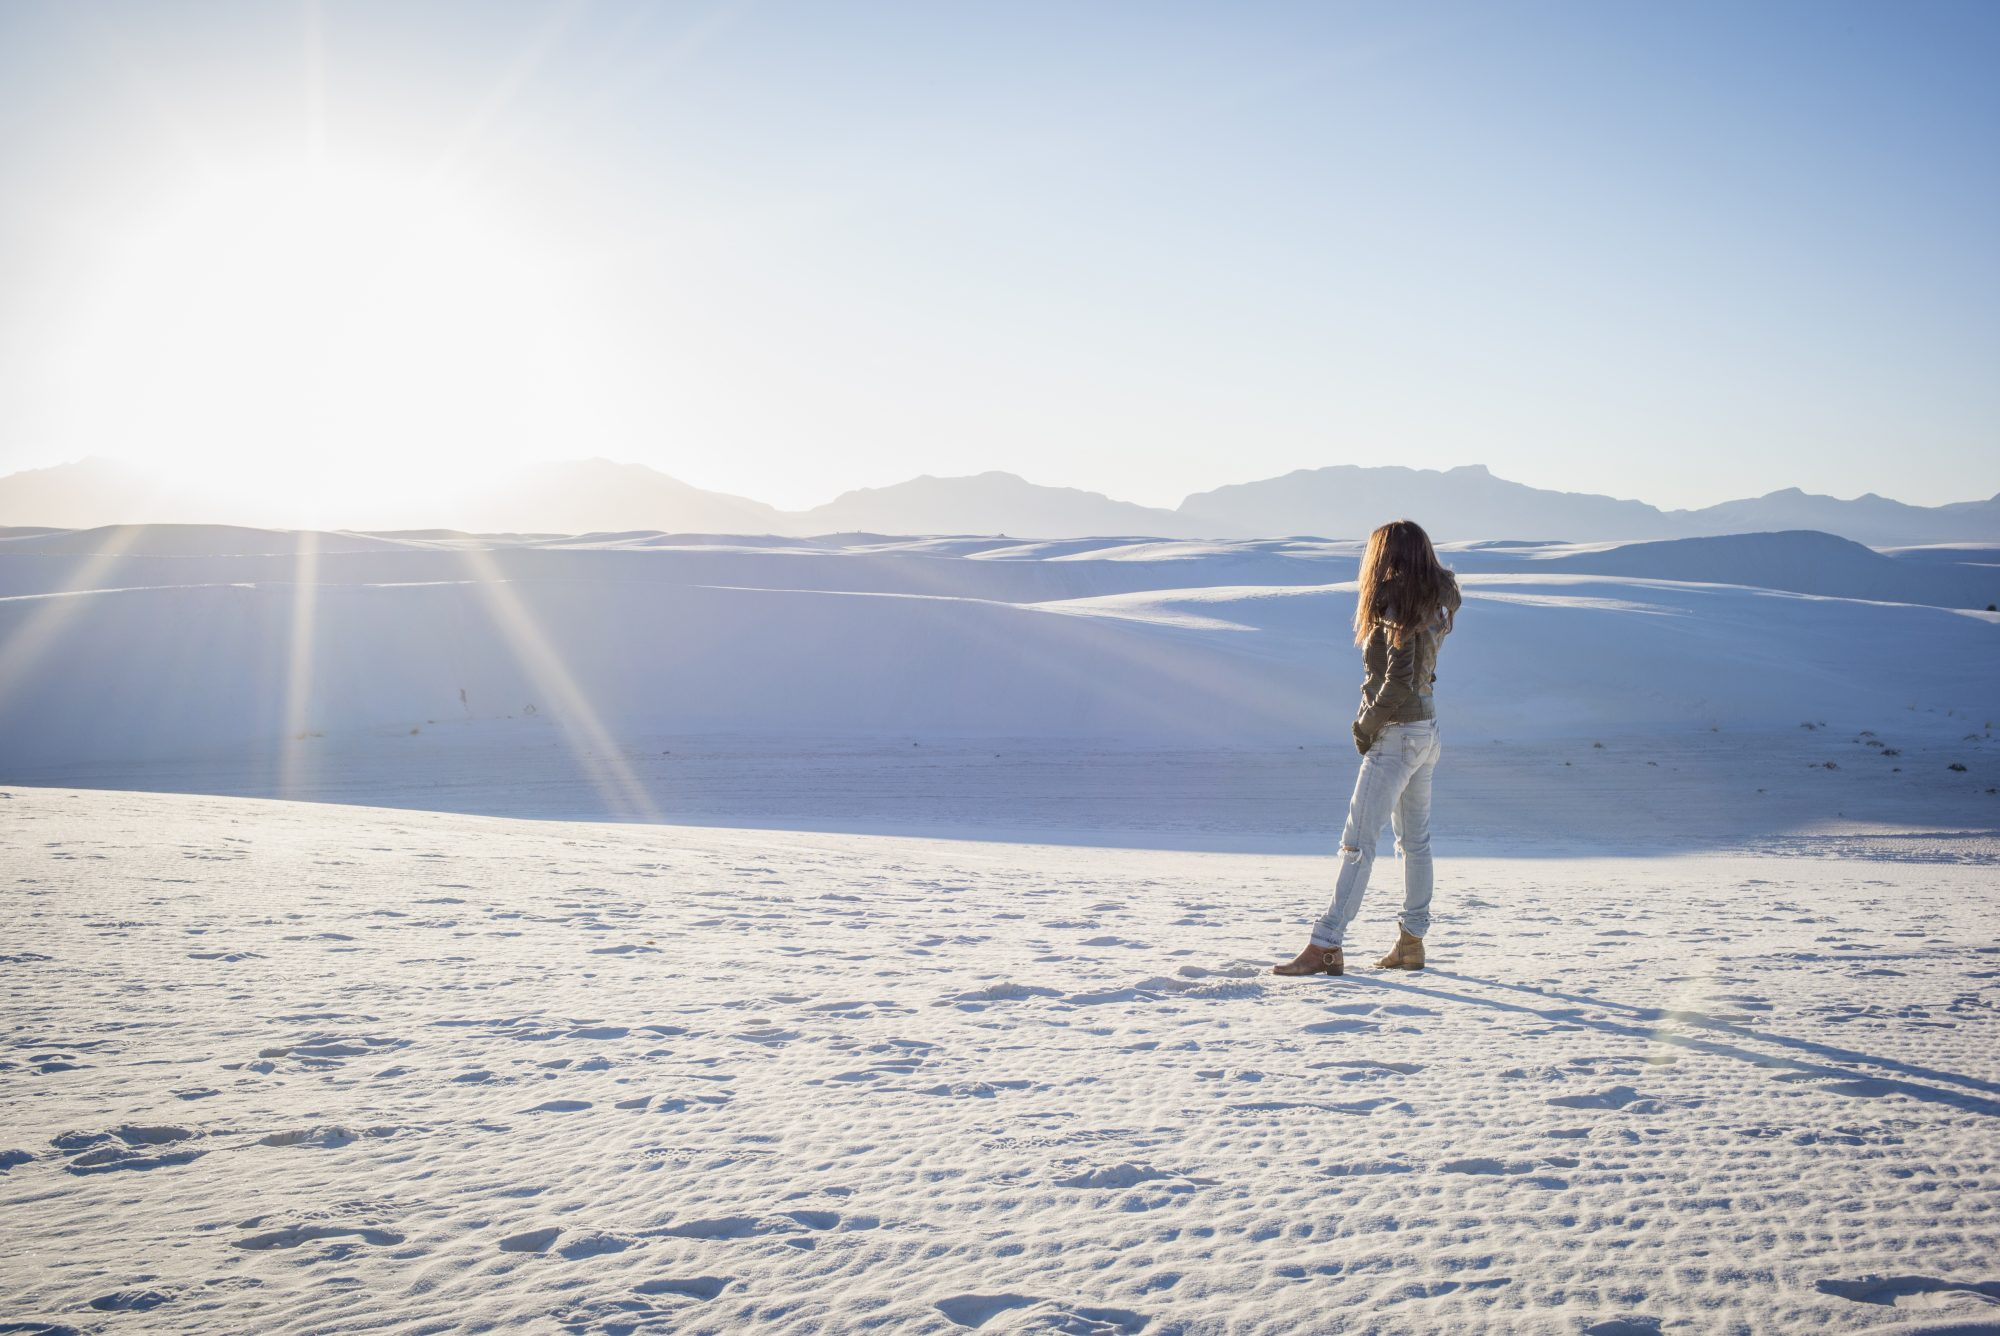 Caucasian woman standing in White Sands National Park, New Mexico, United States